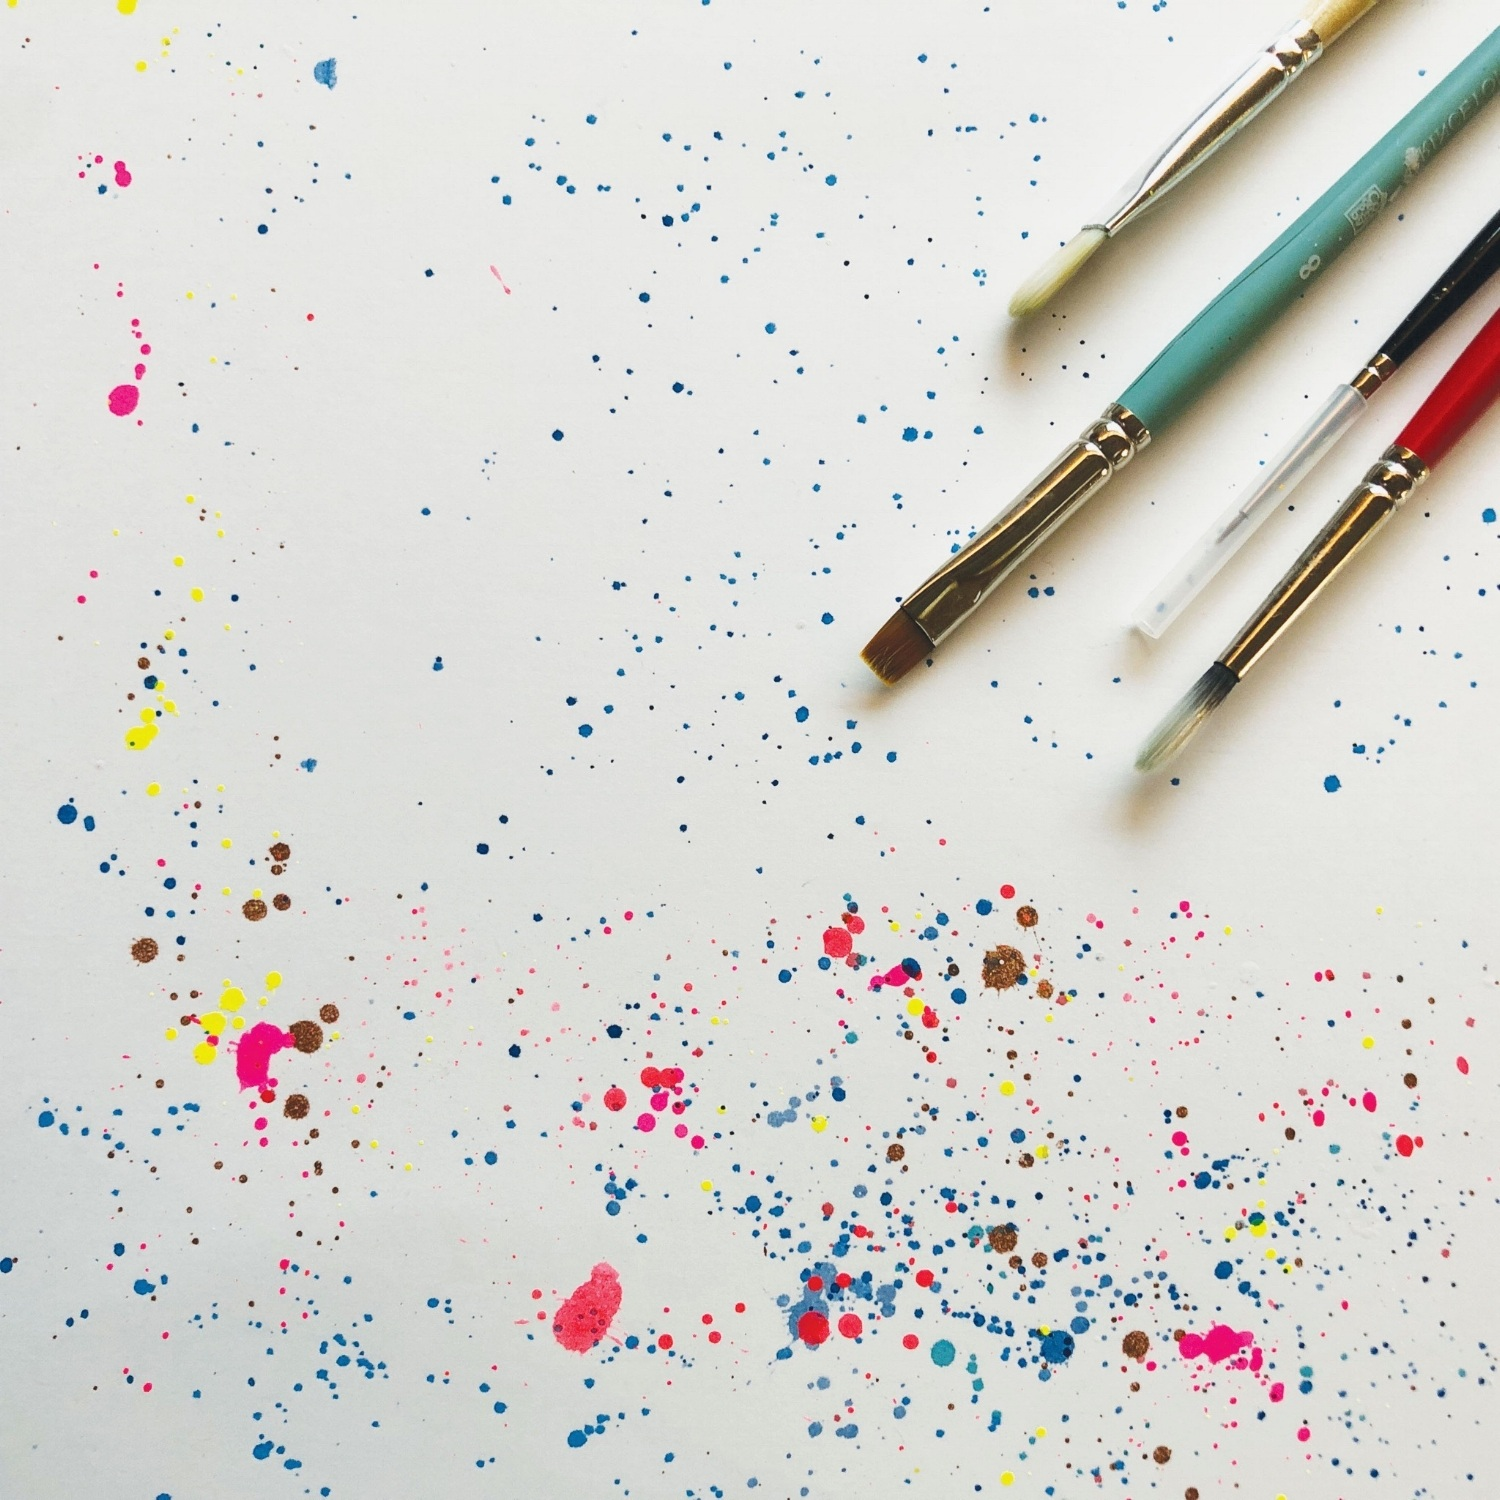 10 Prompts for Creative Journaling